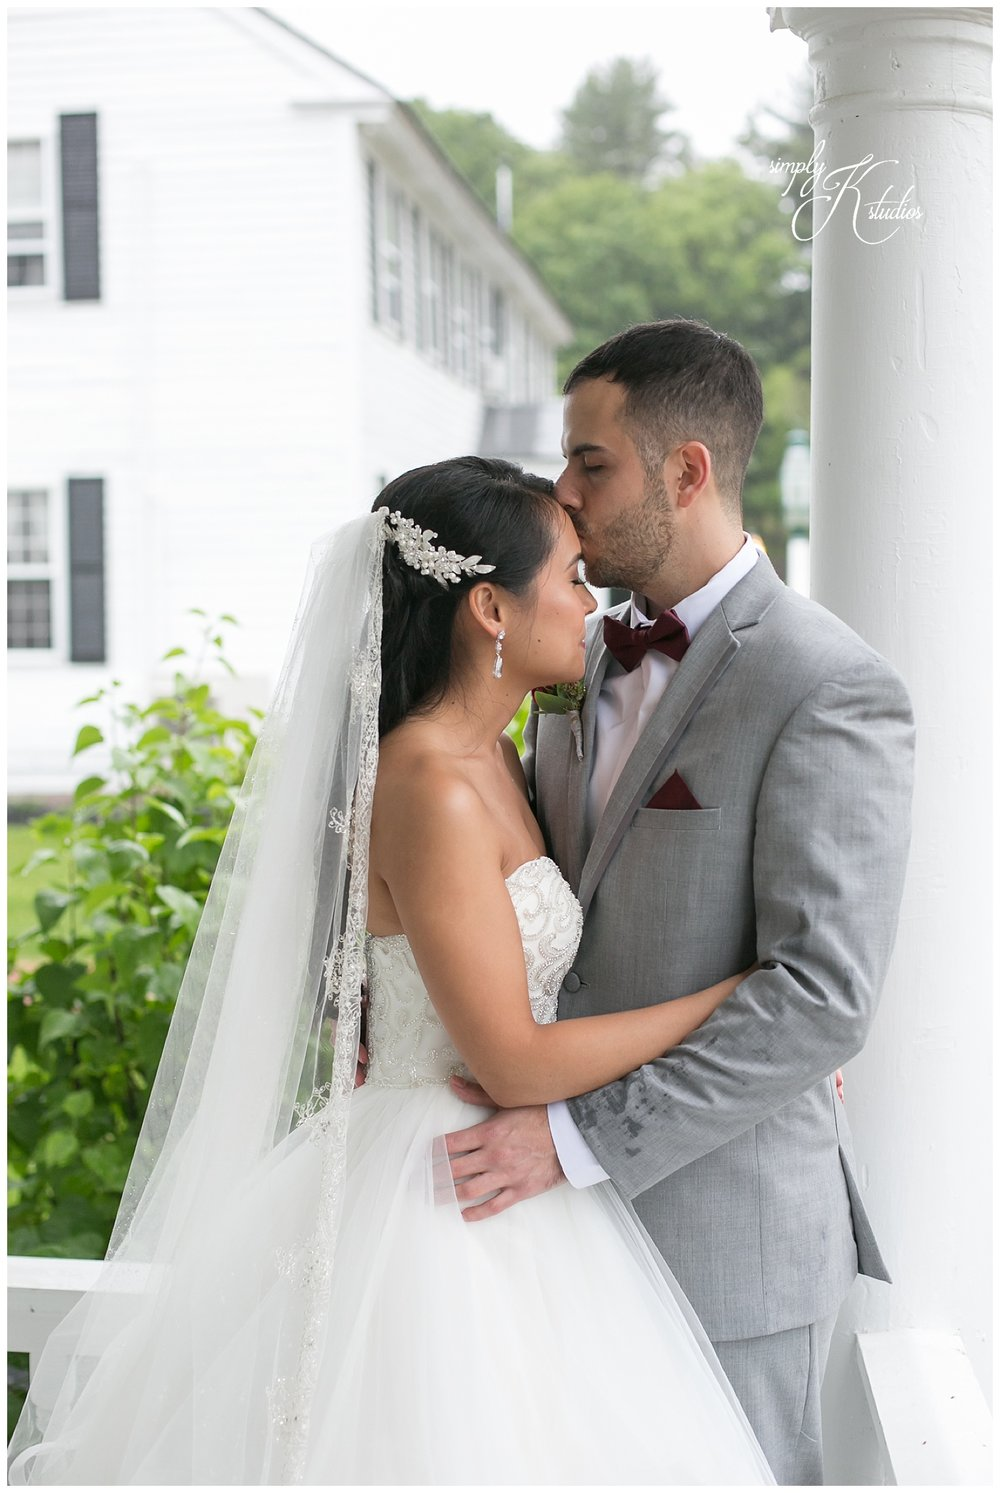 Wedding Photos in Sturbridge Massachusetts.jpg